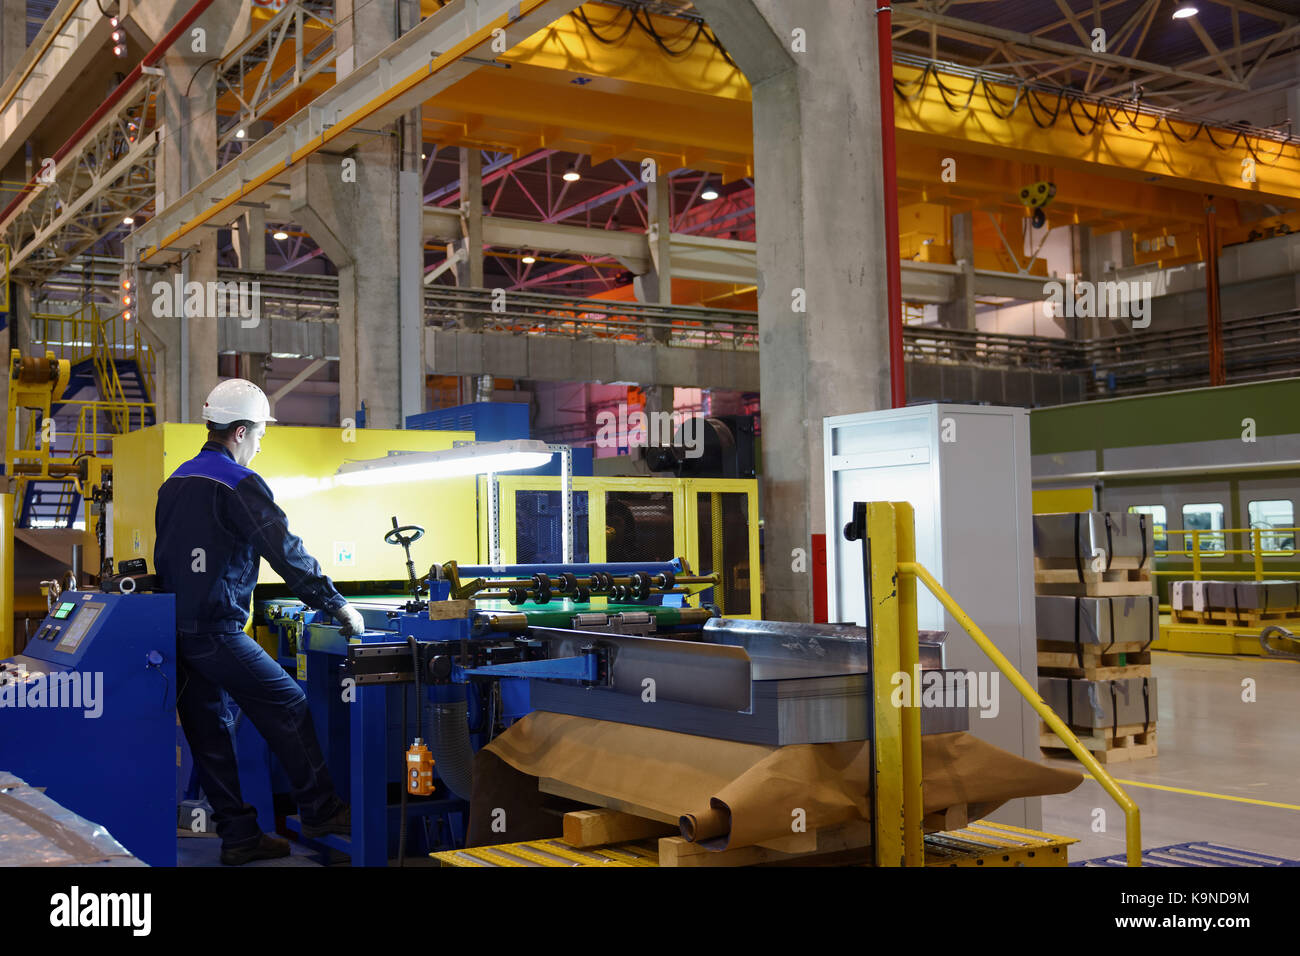 Vsefolozhsk, Leningrad oblast, Russia - June 5, 2015: Presentation of the joint enterprise Severstal-SSC-Vsevolozsk. - Stock Image